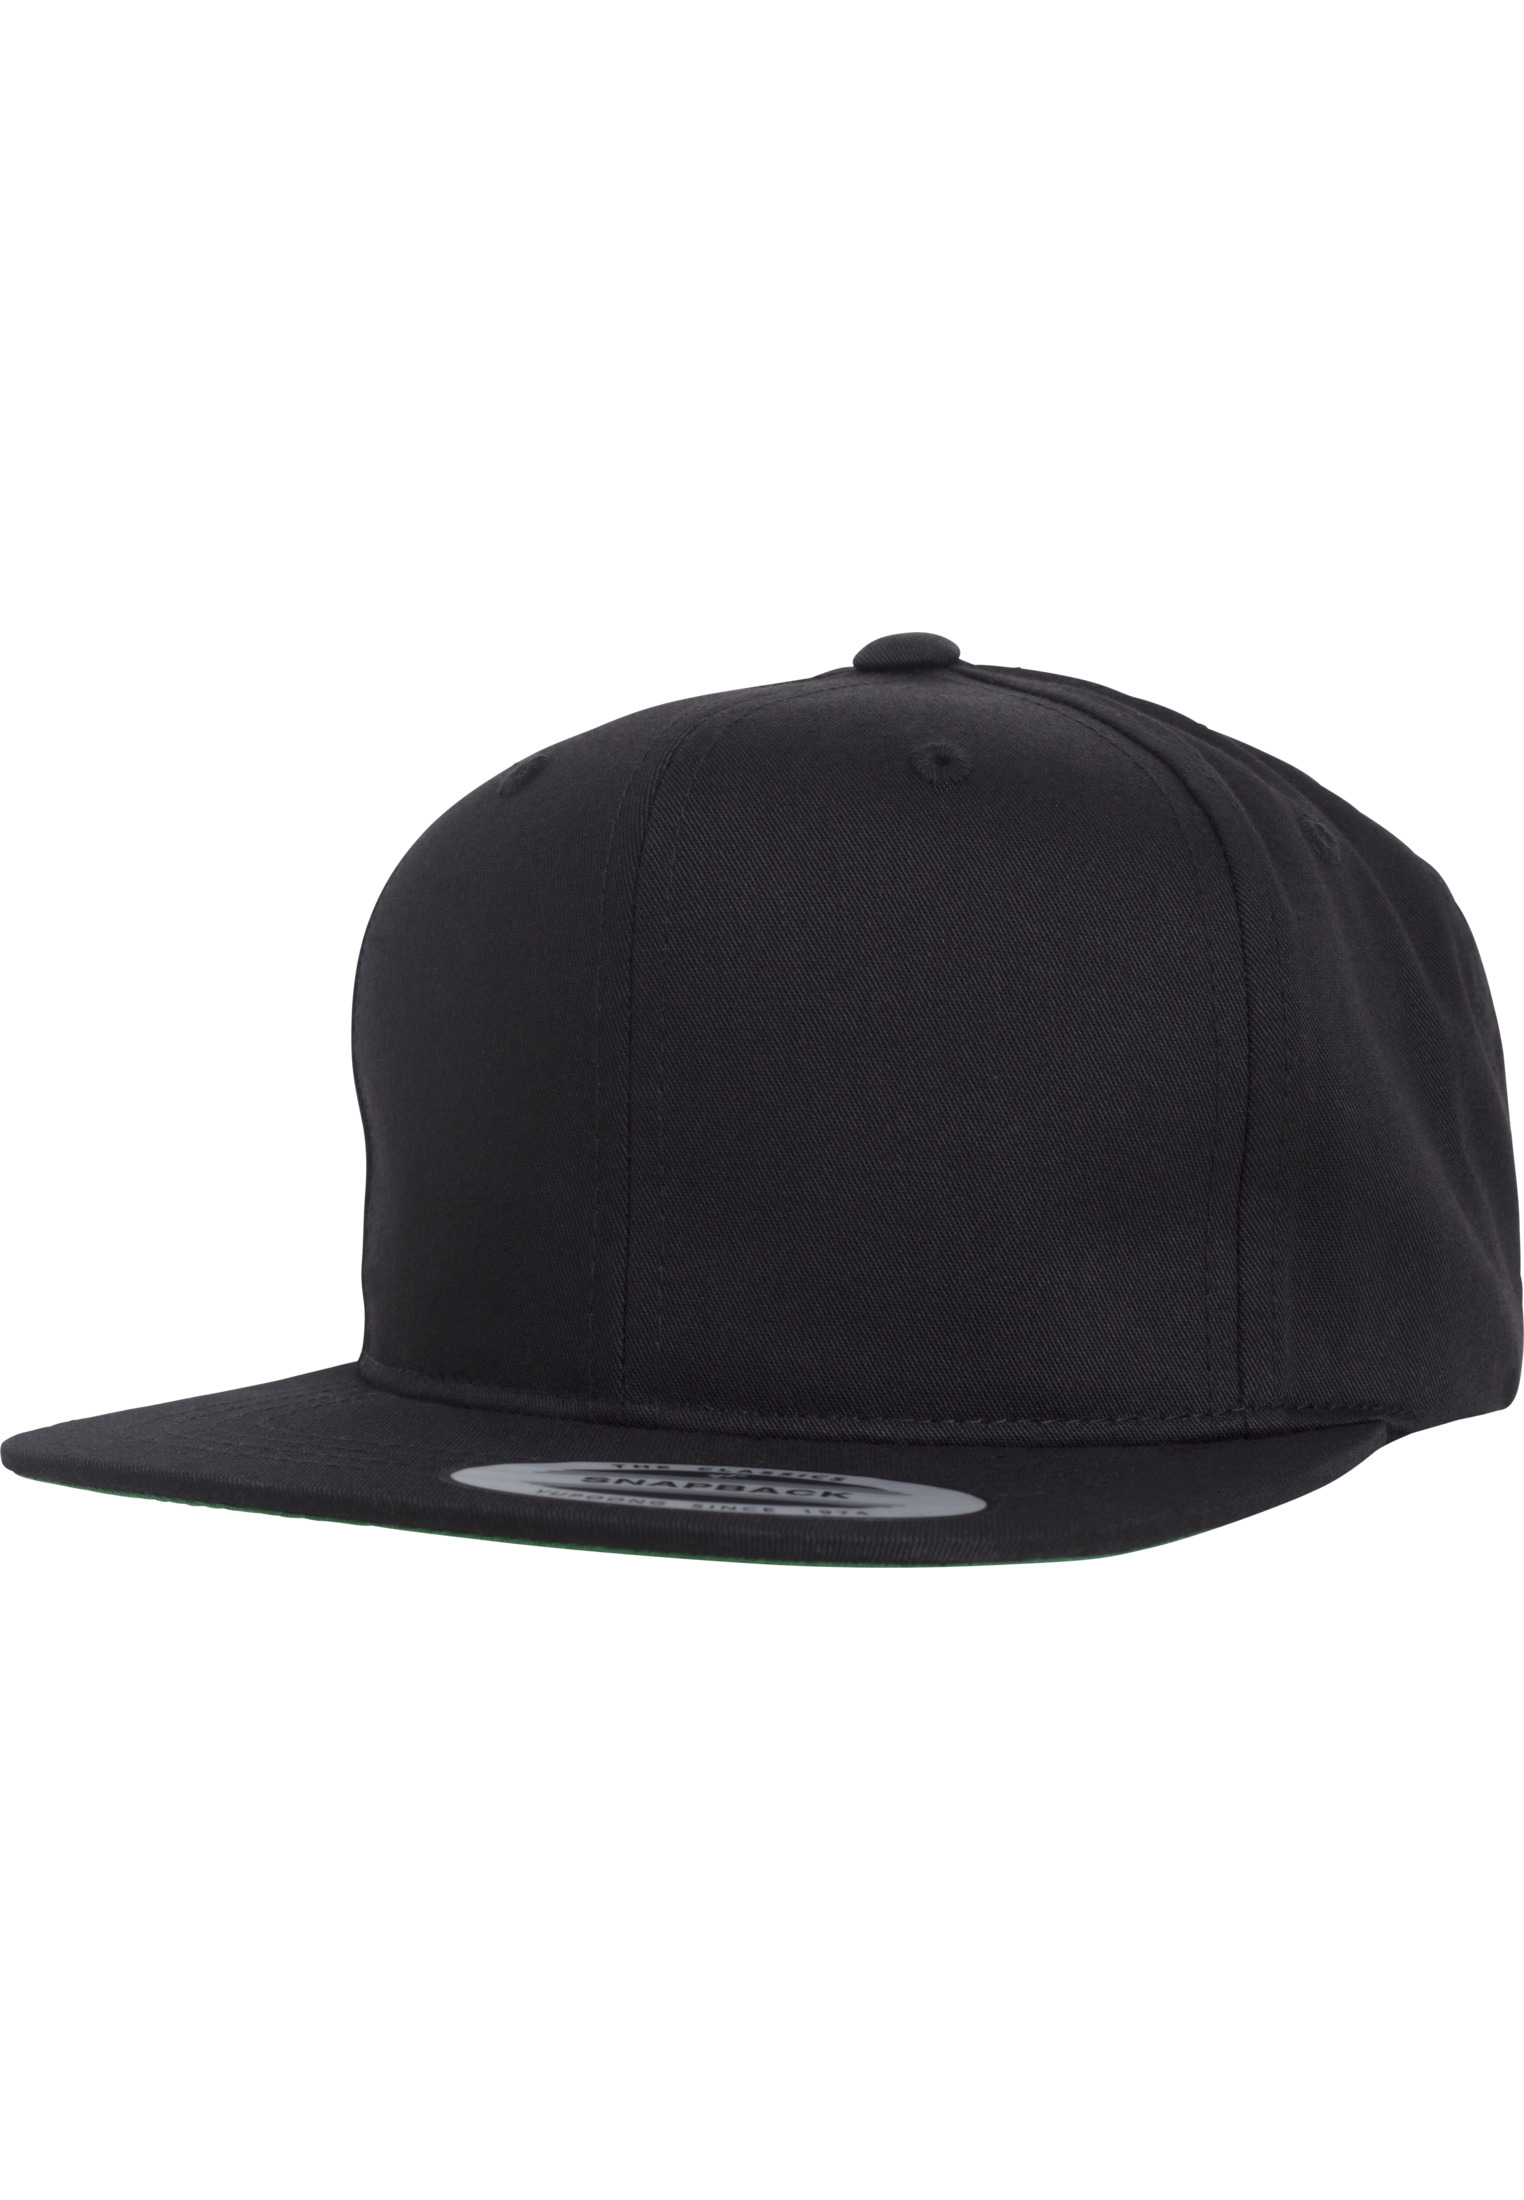 Urban Classic Pro-Style Twill Snapback Youth Cap black - B (Ages 6-14)